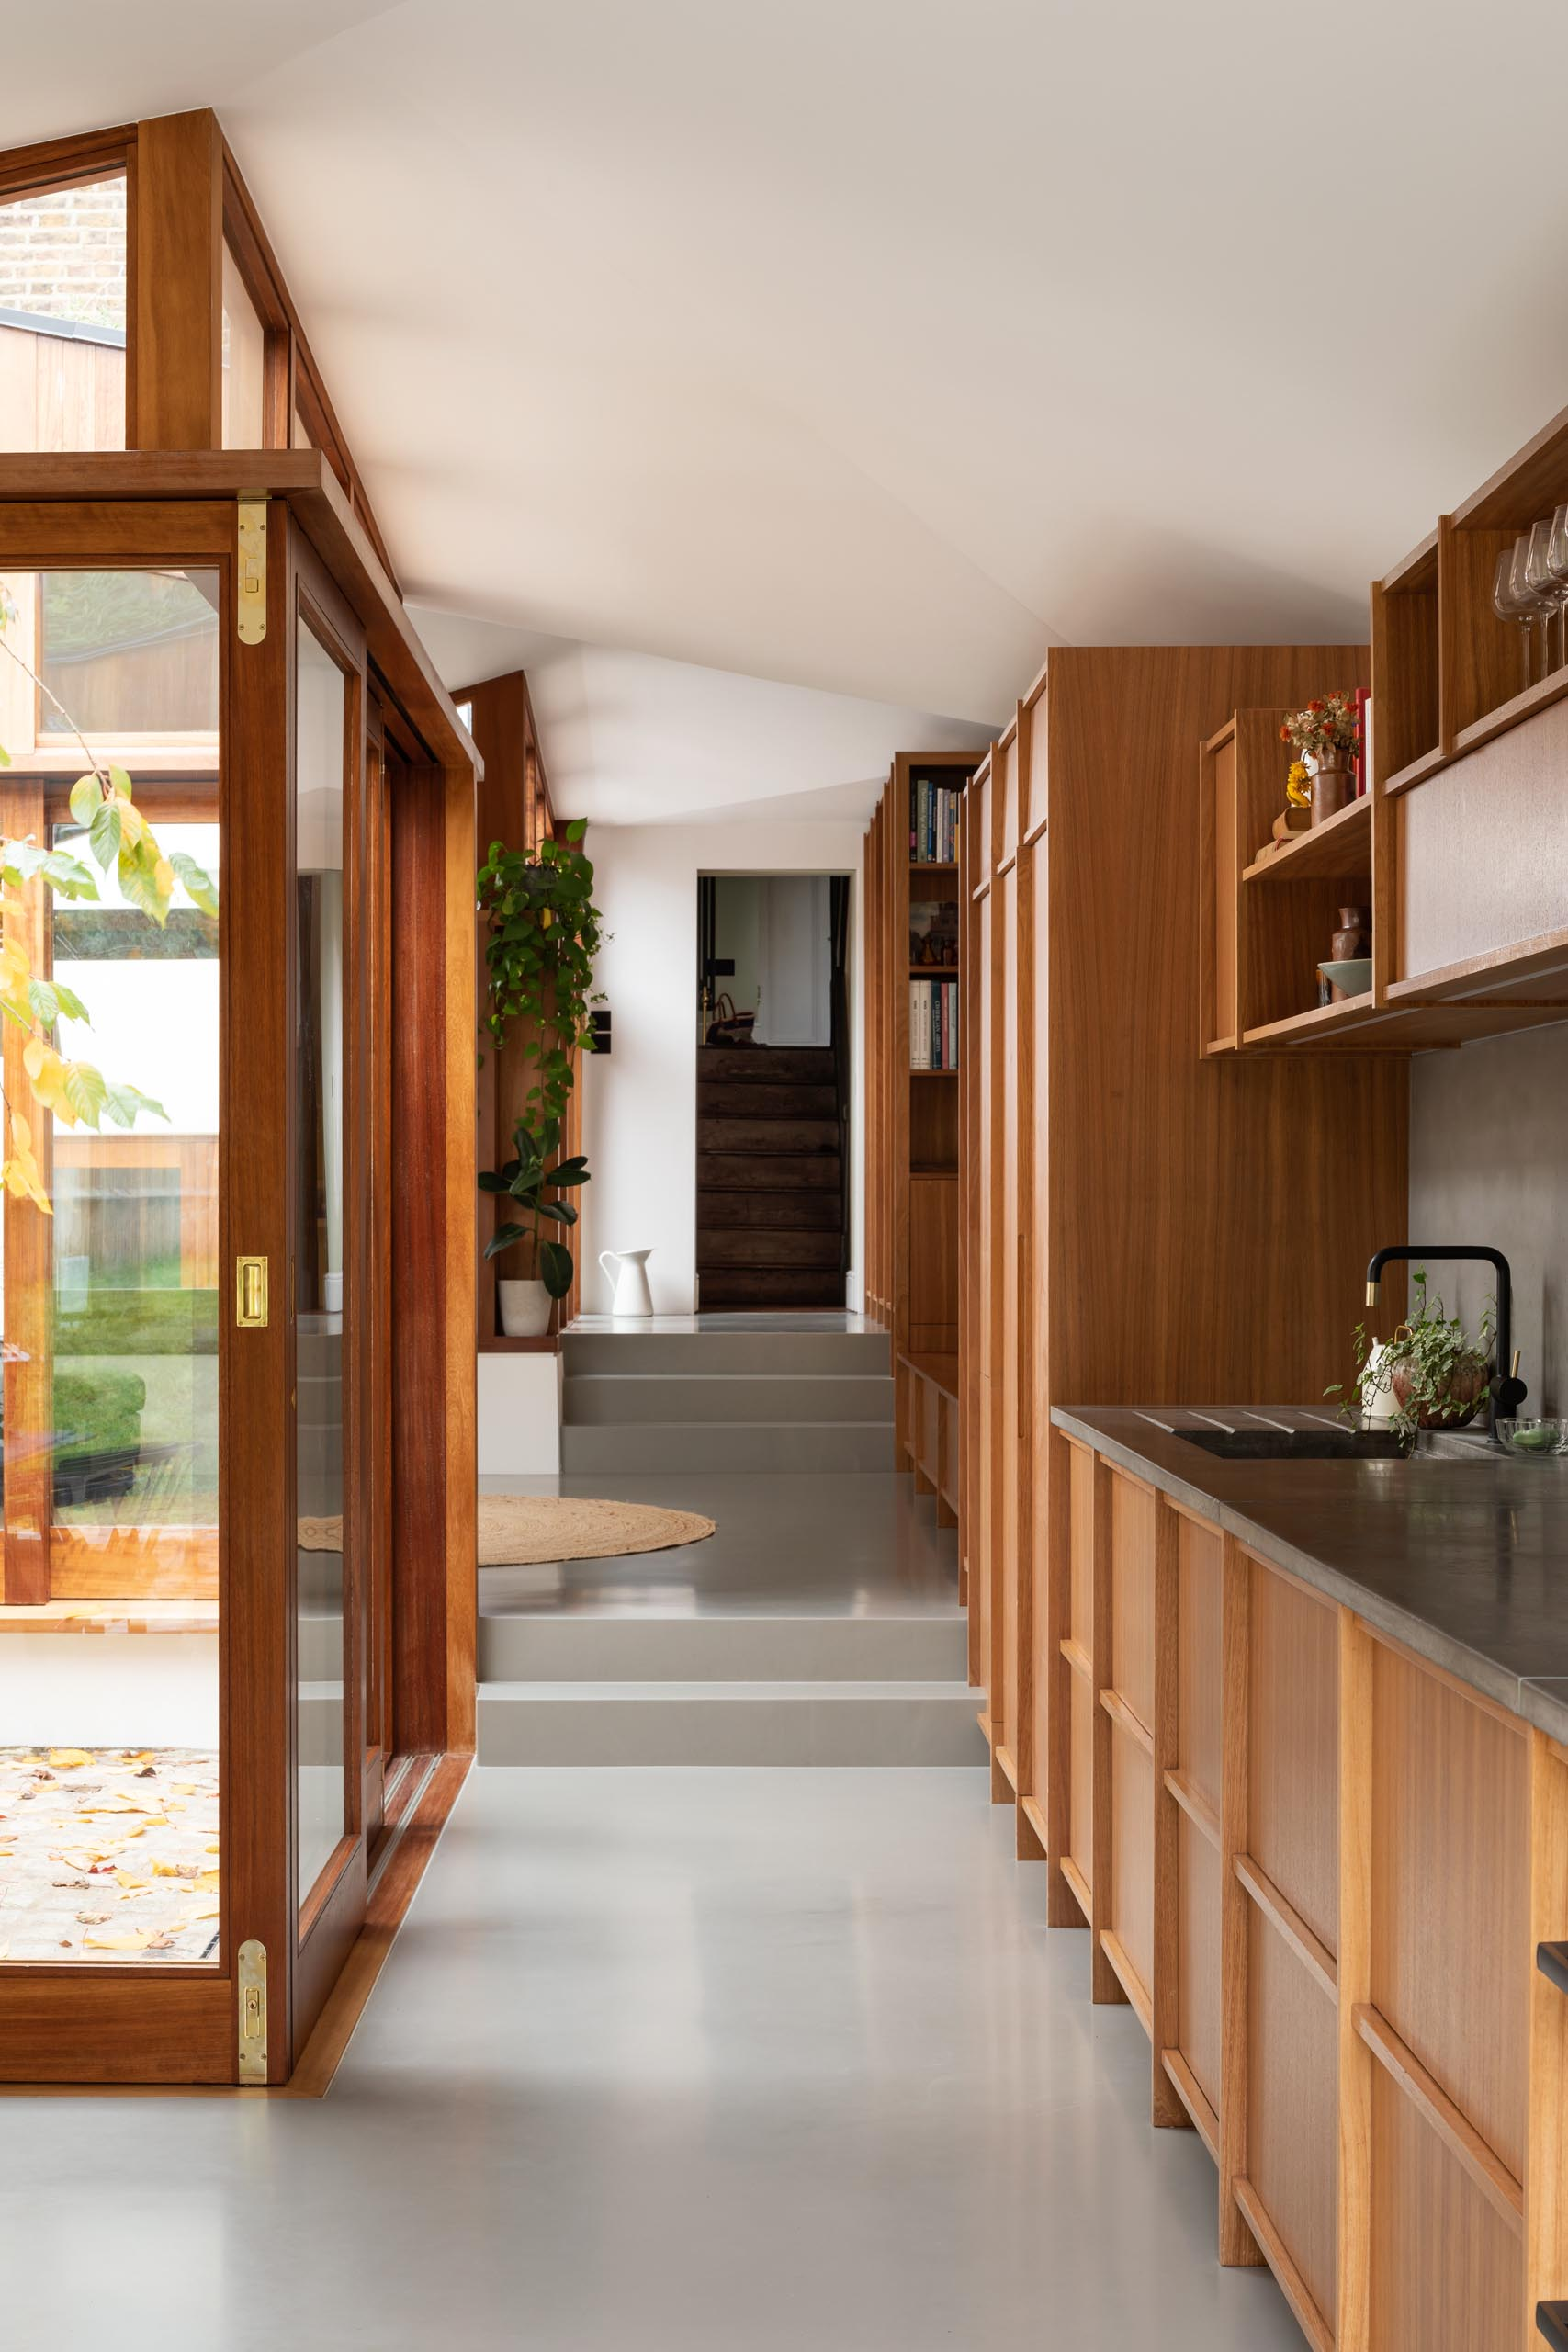 A linear wood kitchen with hardware free cabinets and a dark gray backsplash.